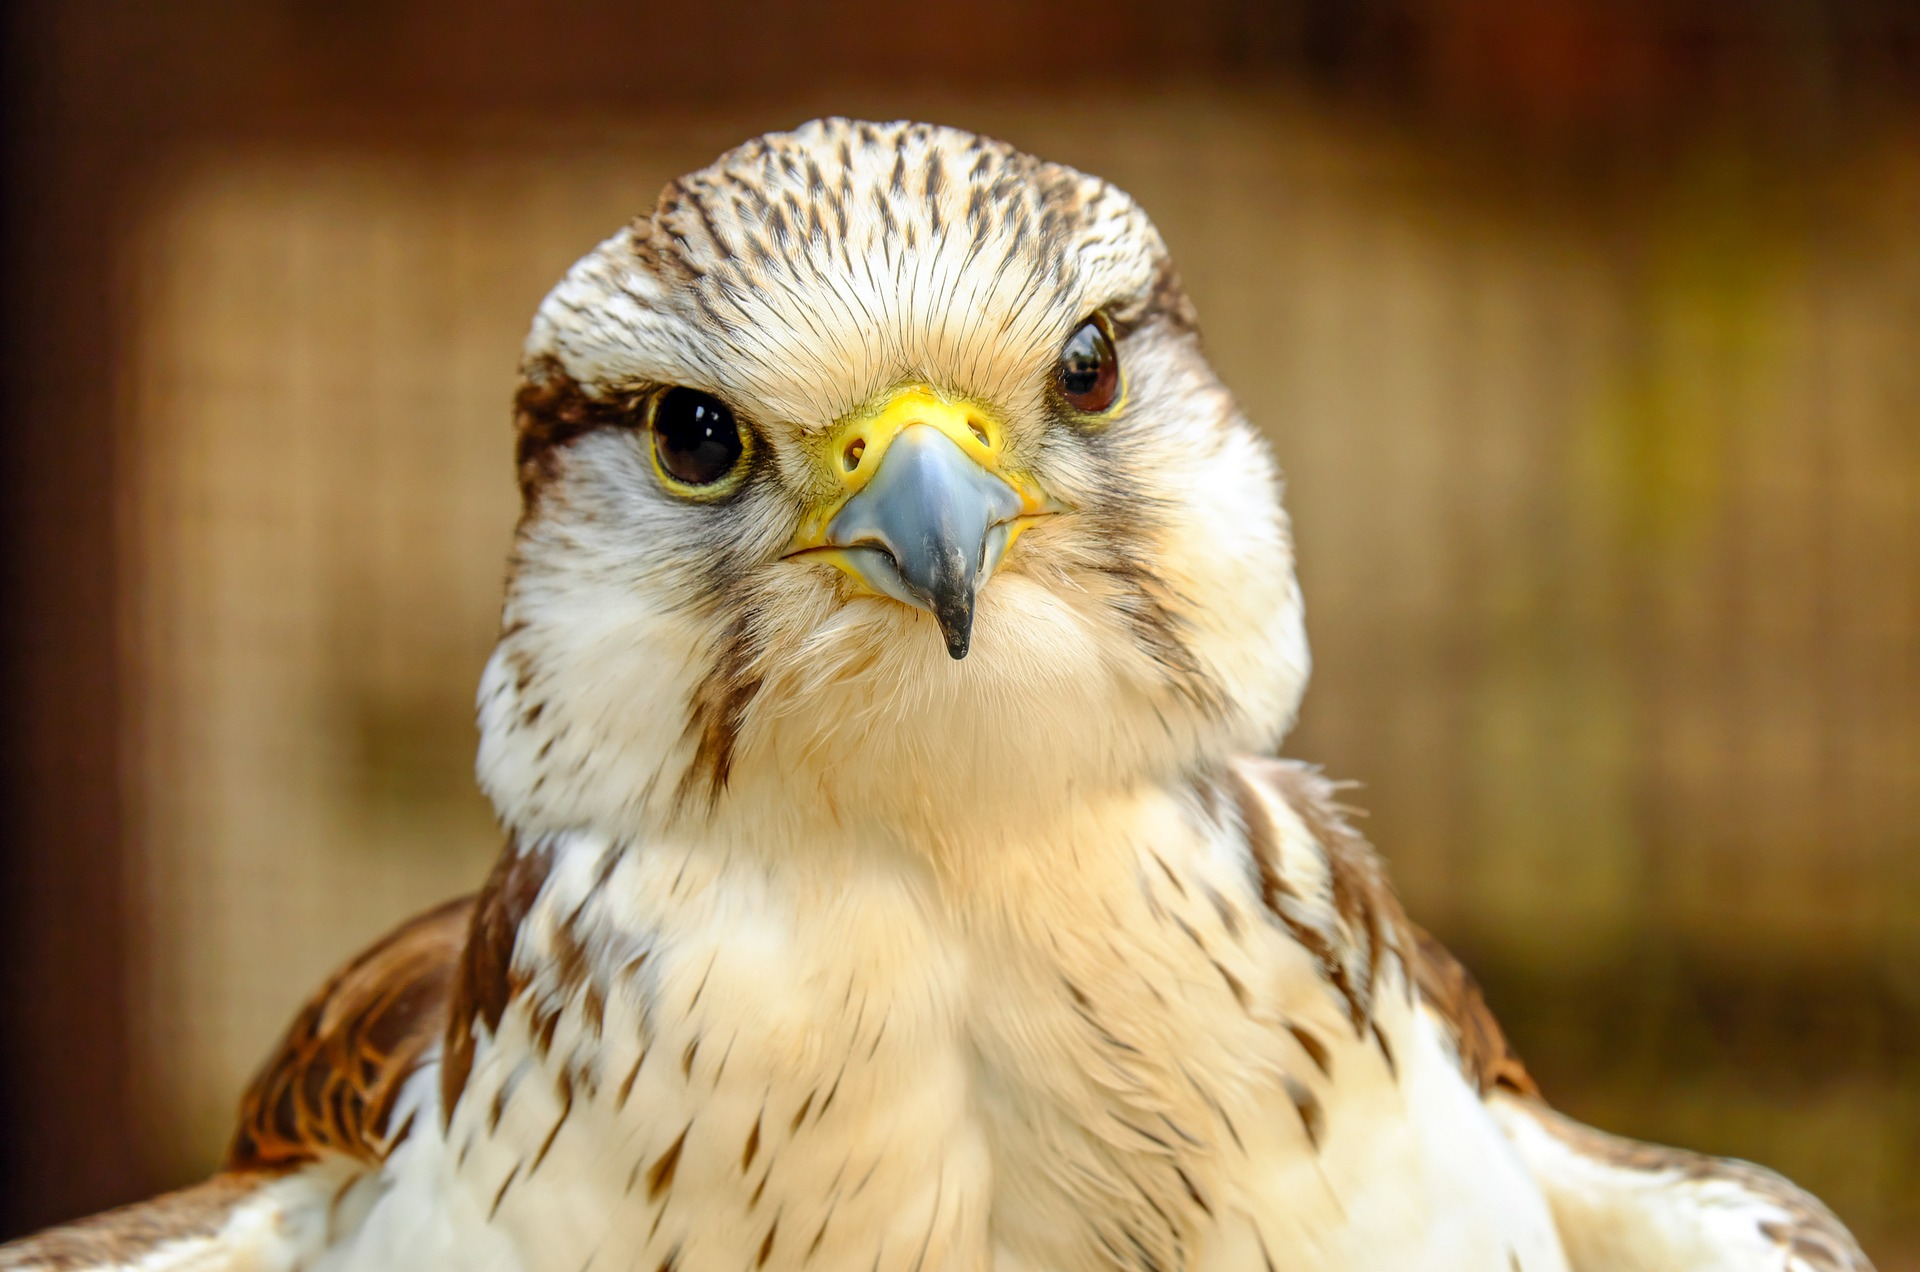 close up on face of a falcon